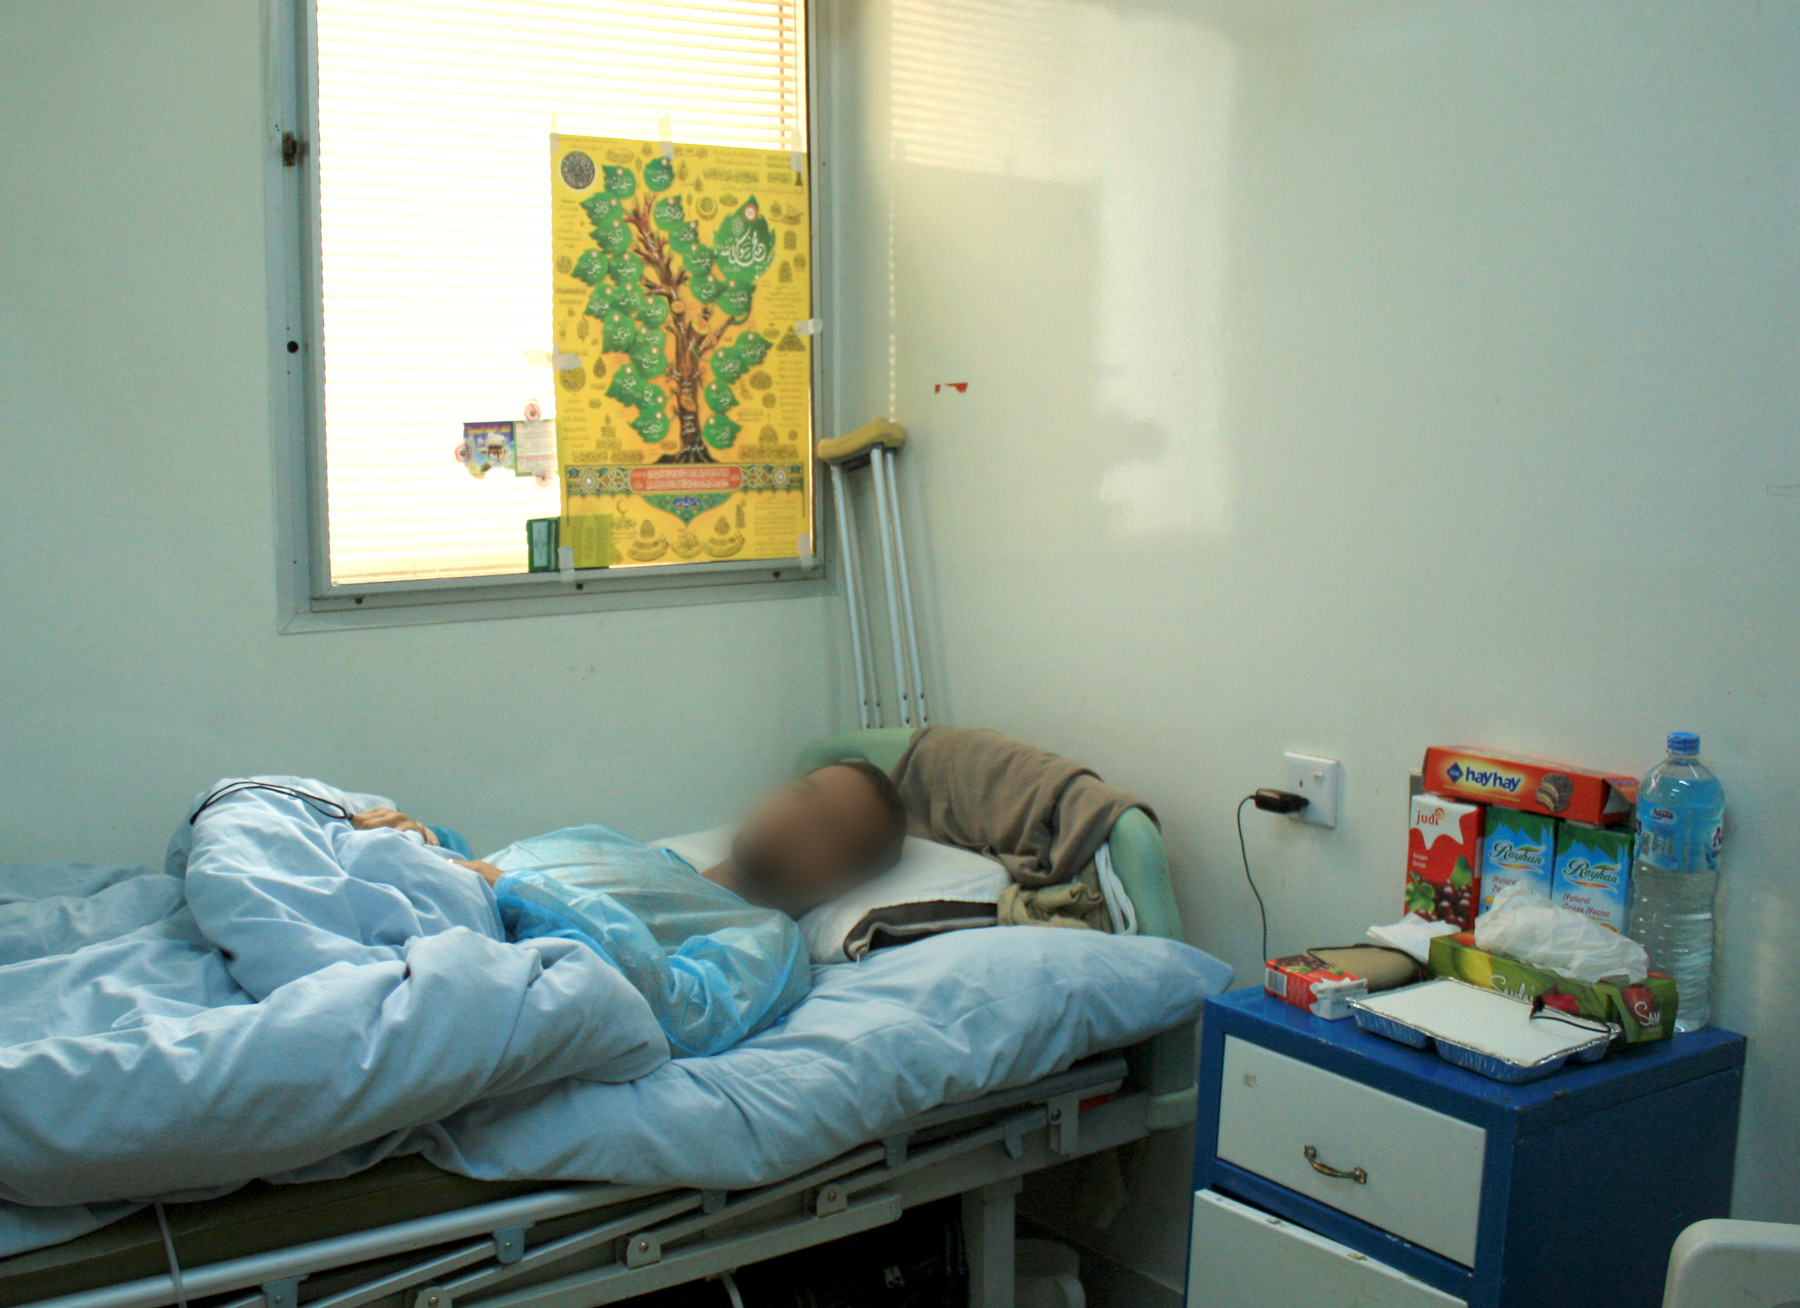 An injured man waits to be operated on in a Benghazi hospital. He was shot by pro-Gaddafi forces while fighting on the frontline at the beginning of March